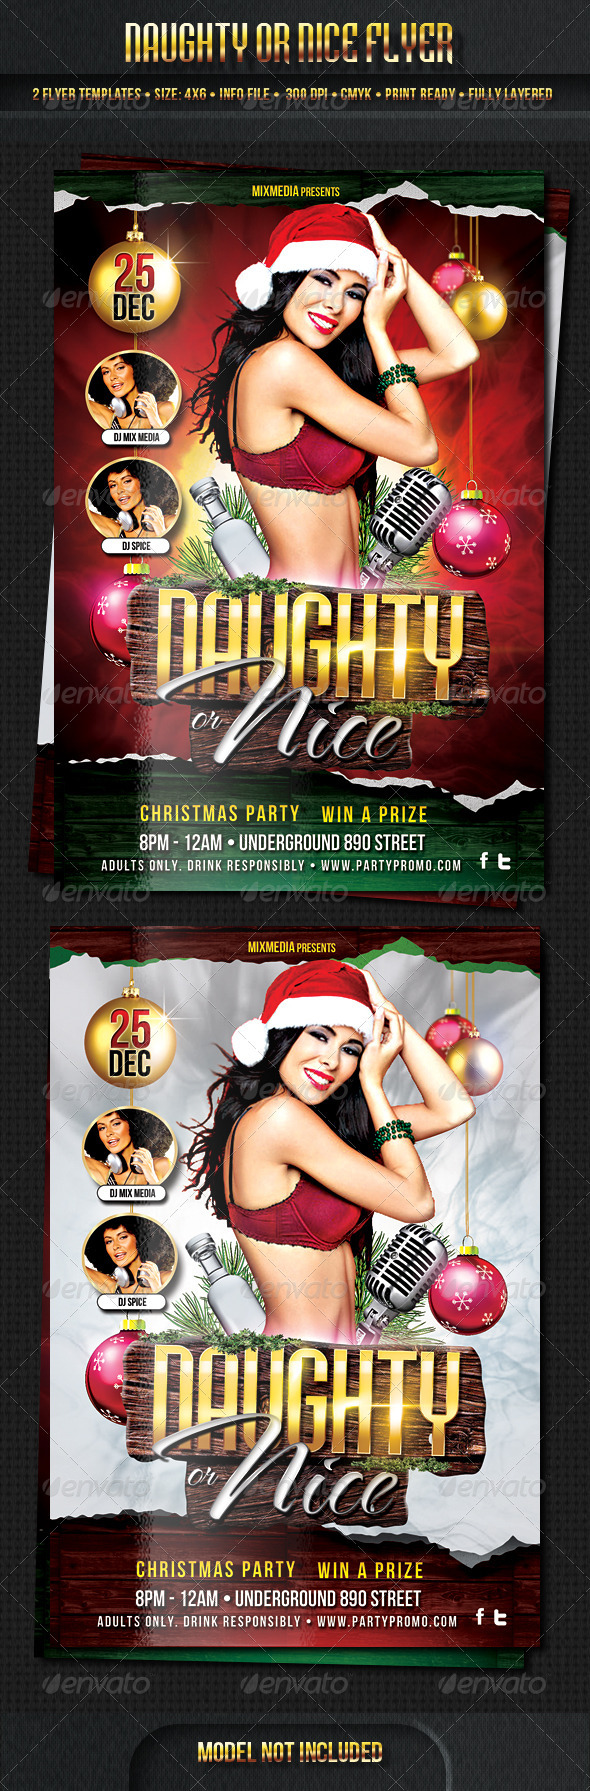 Naughy or Nice Flyer Template - Clubs & Parties Events